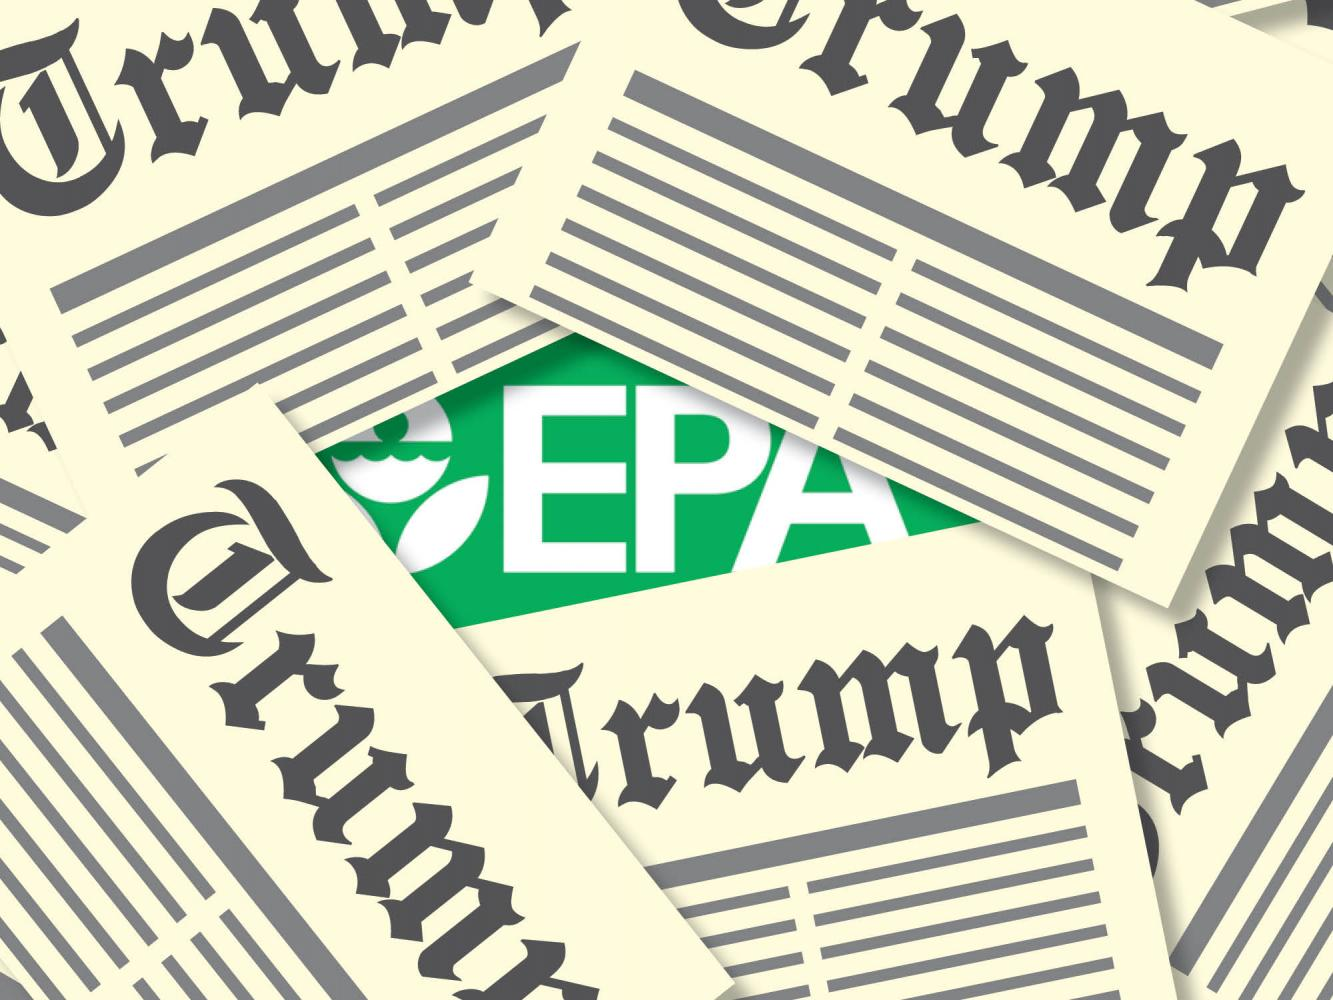 The news has been clogged up with exaggerated stories of how Trump is defunding the EPA.